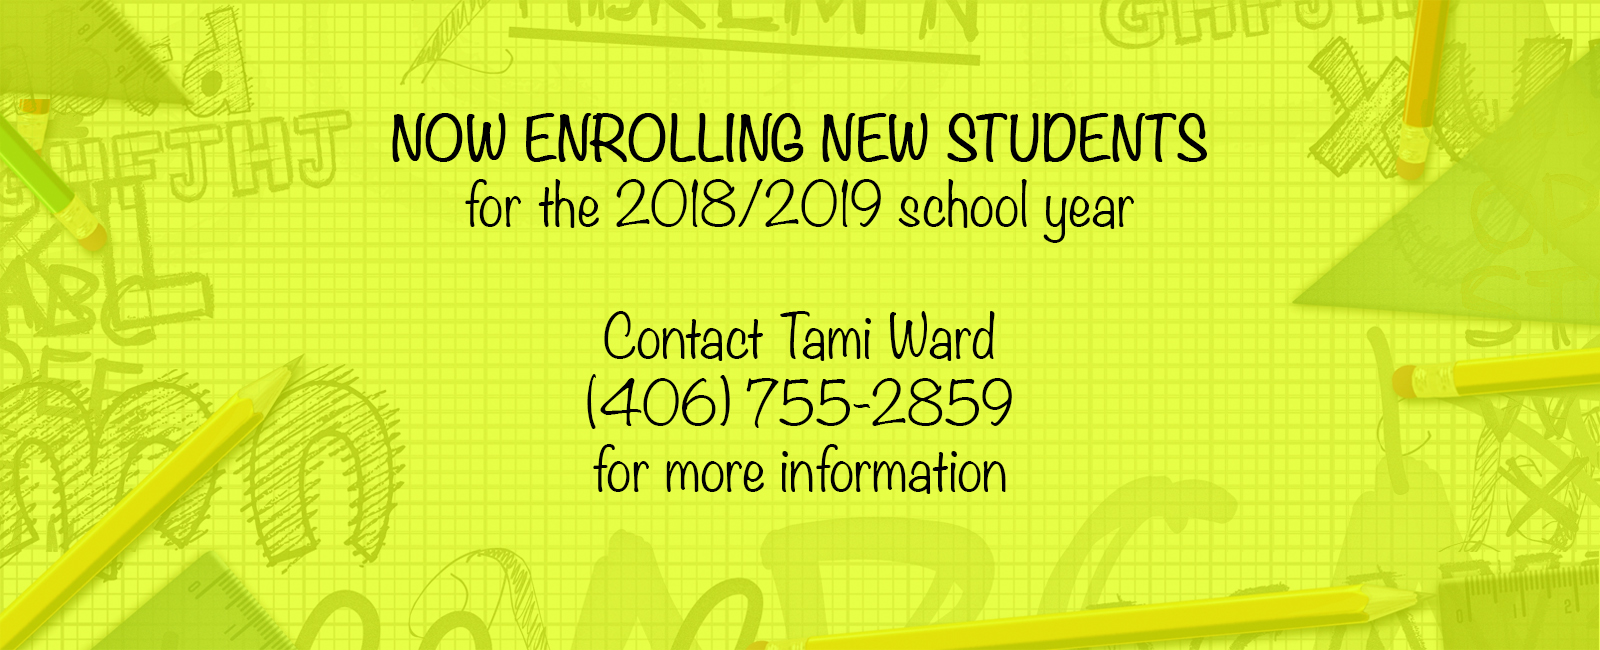 Now enrolling new students